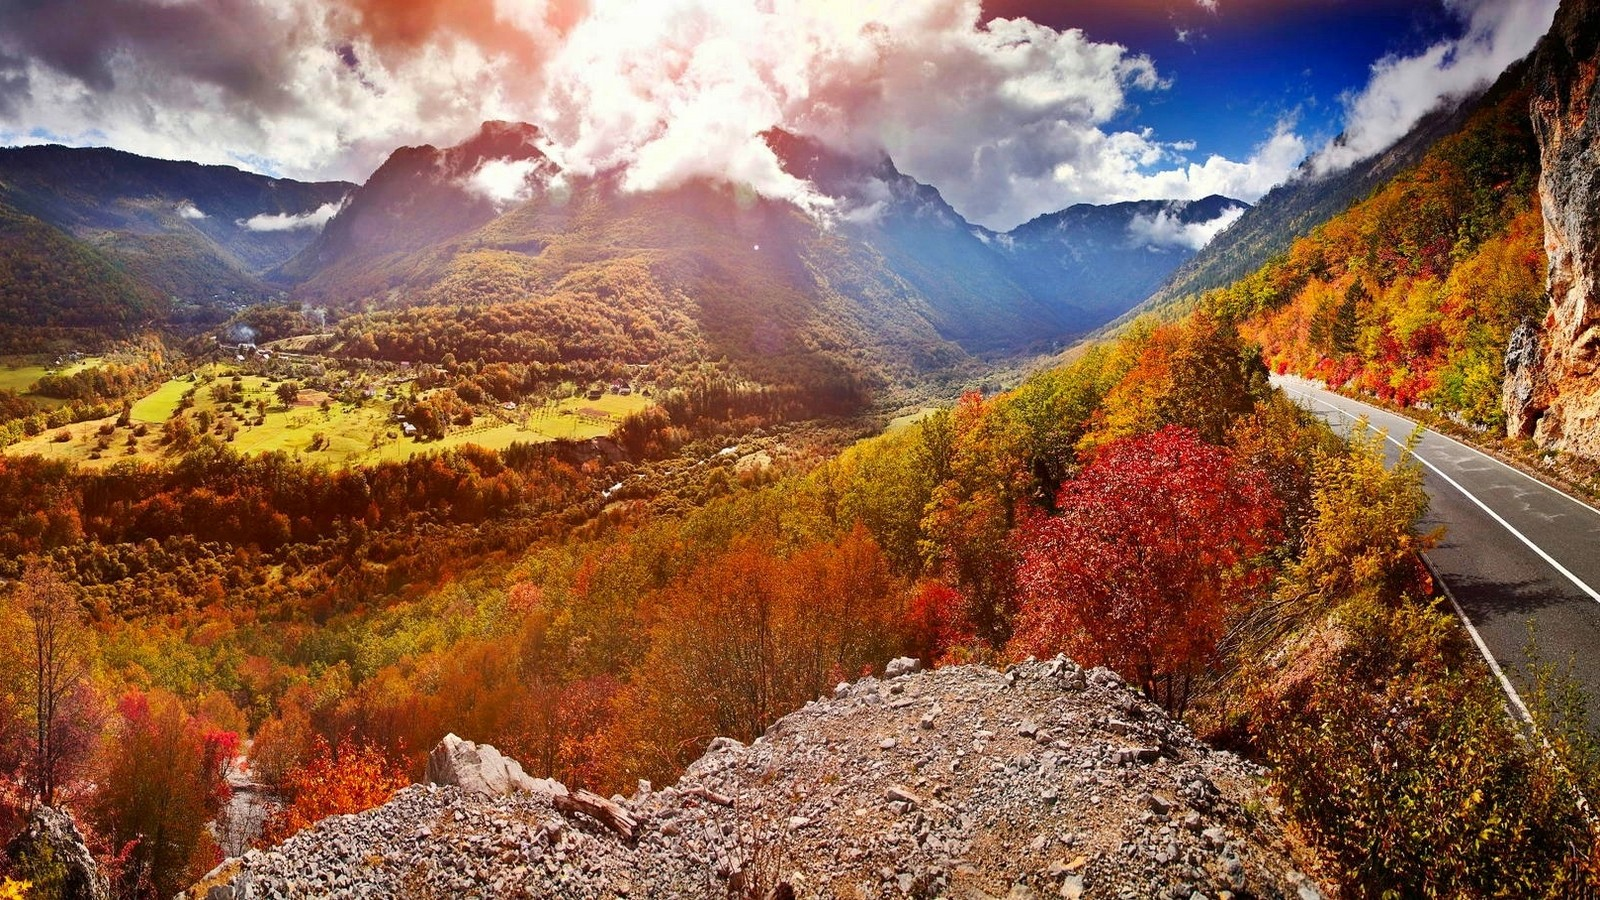 General 1600x900 nature landscape valley road mountains sunlight clouds forest fall trees colorful Montenegro